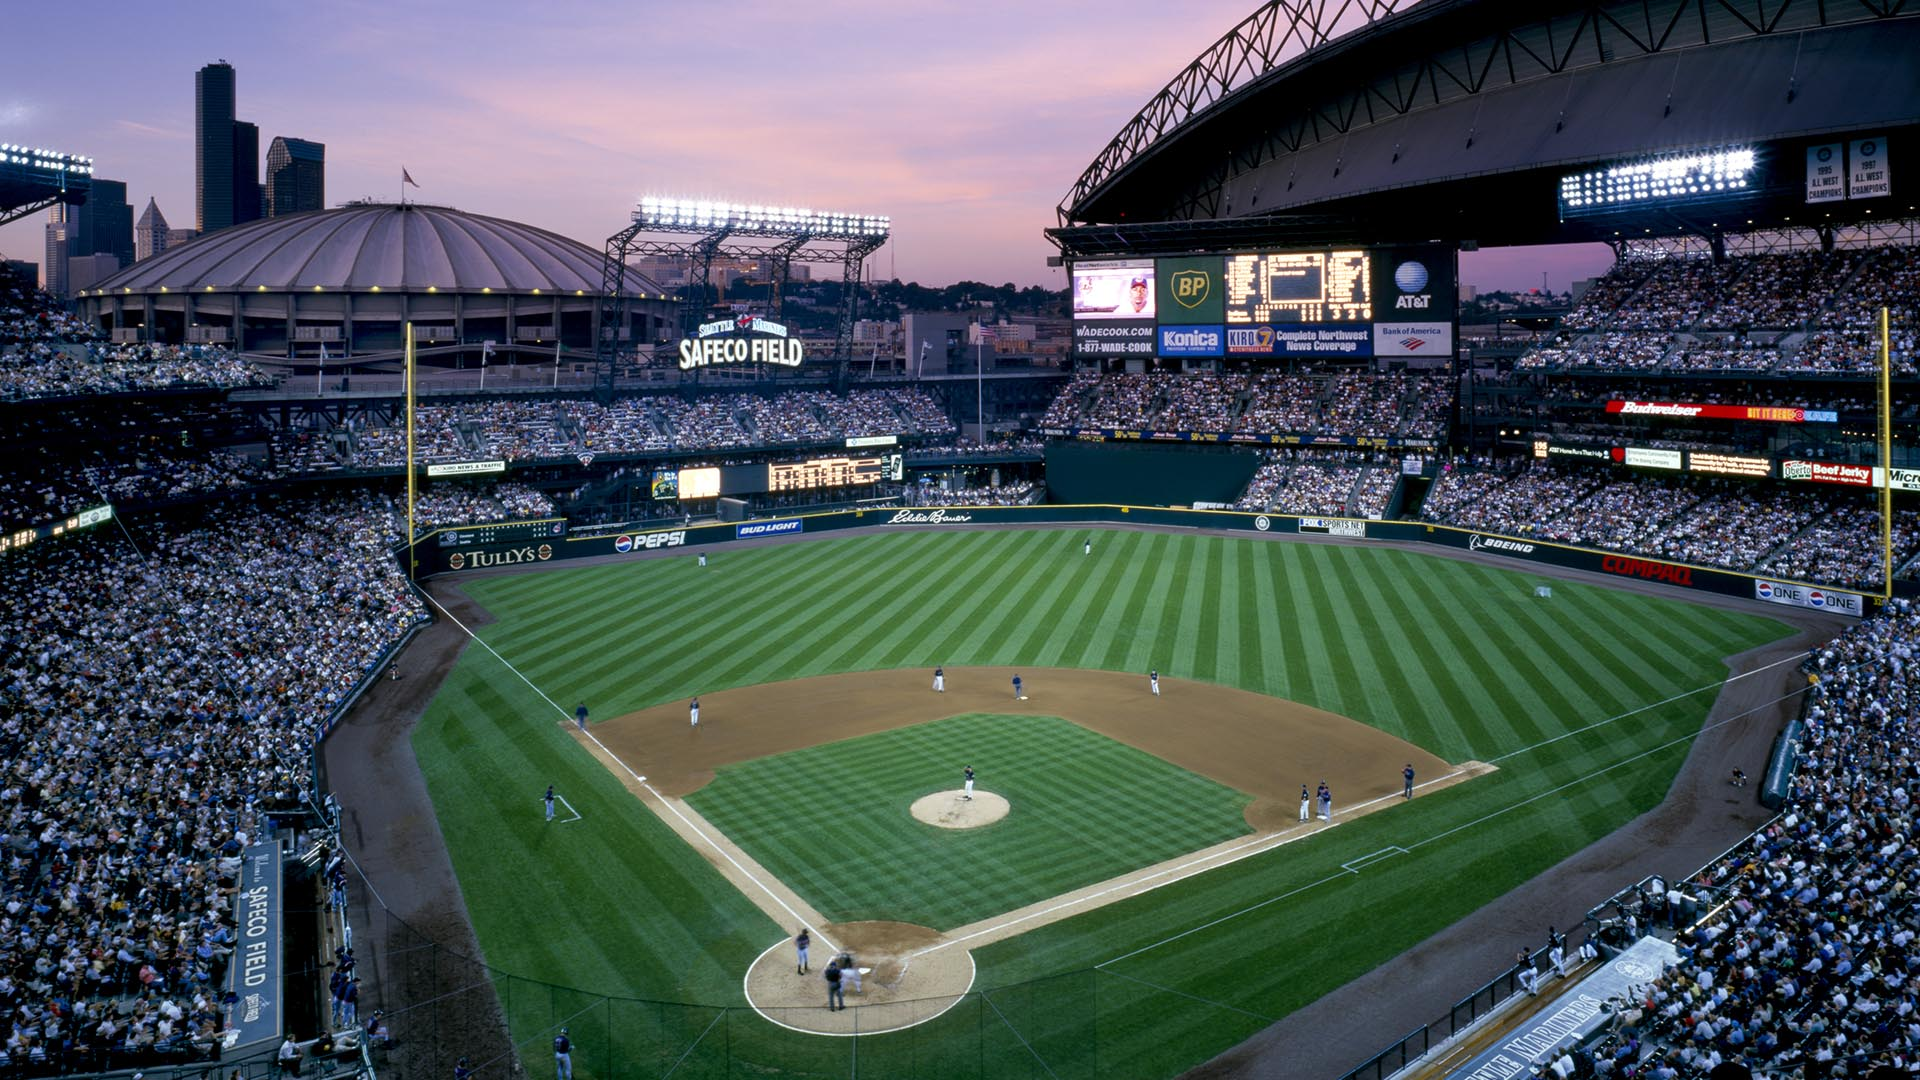 Safeco Field Seneca Group